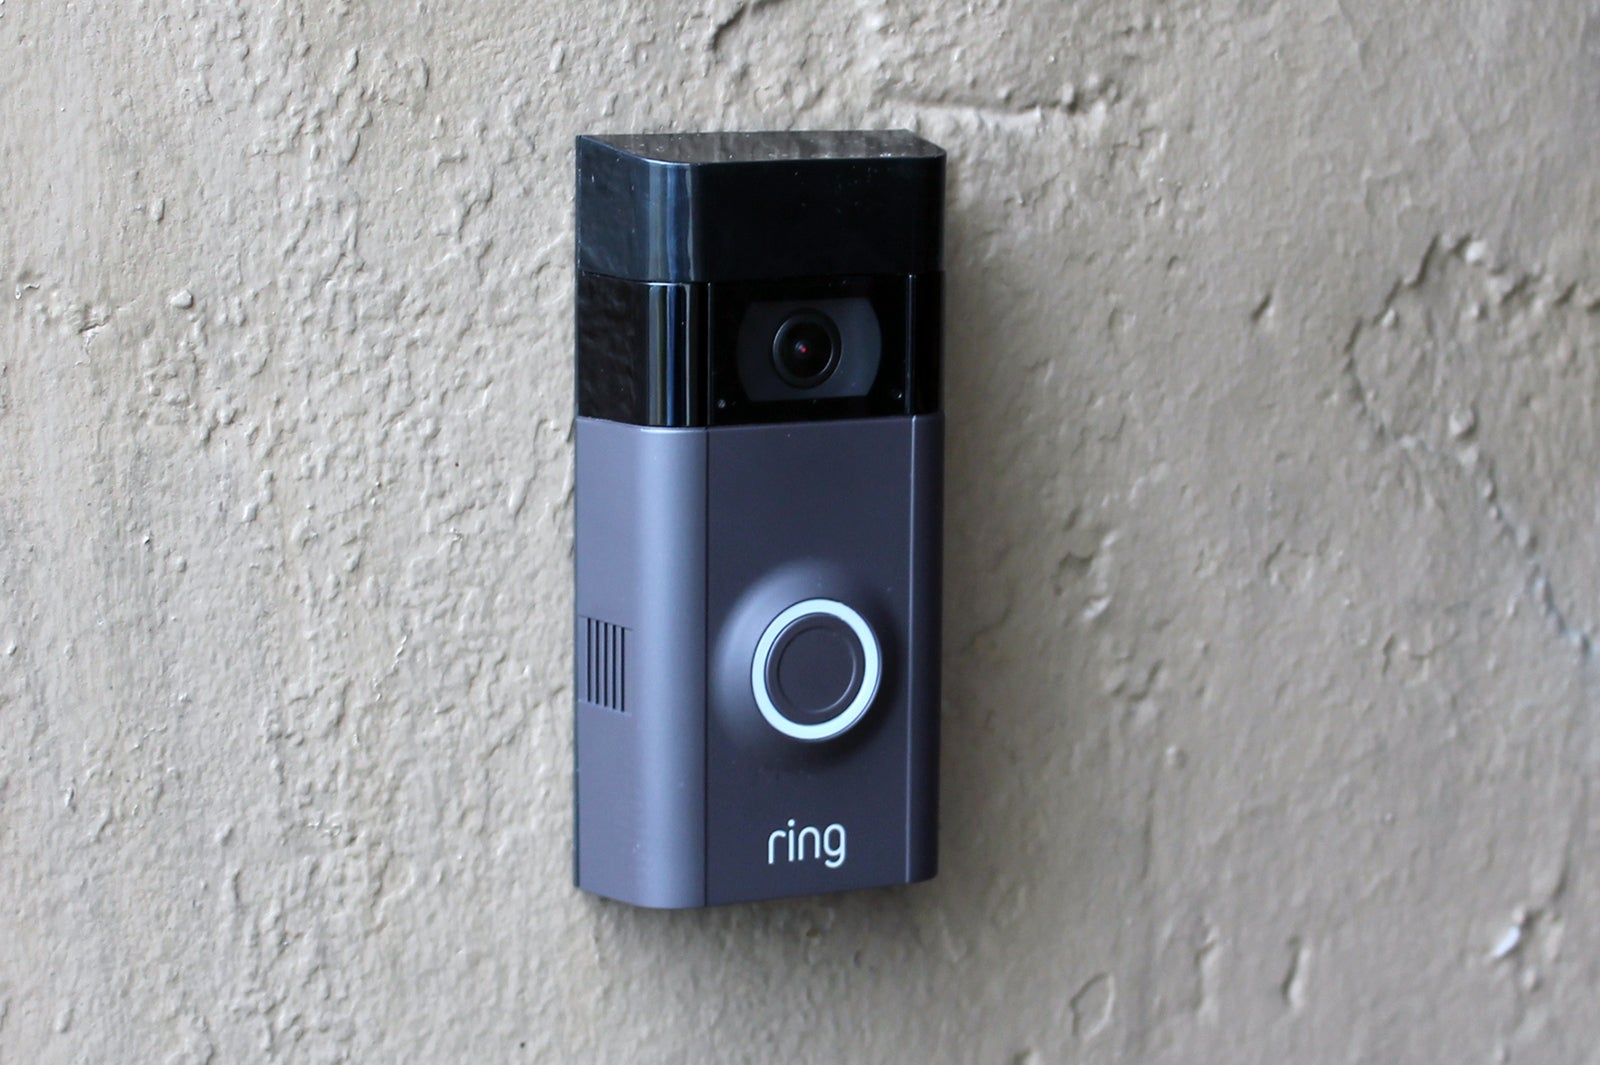 hight resolution of ring video doorbell 2 review better features new frustrations